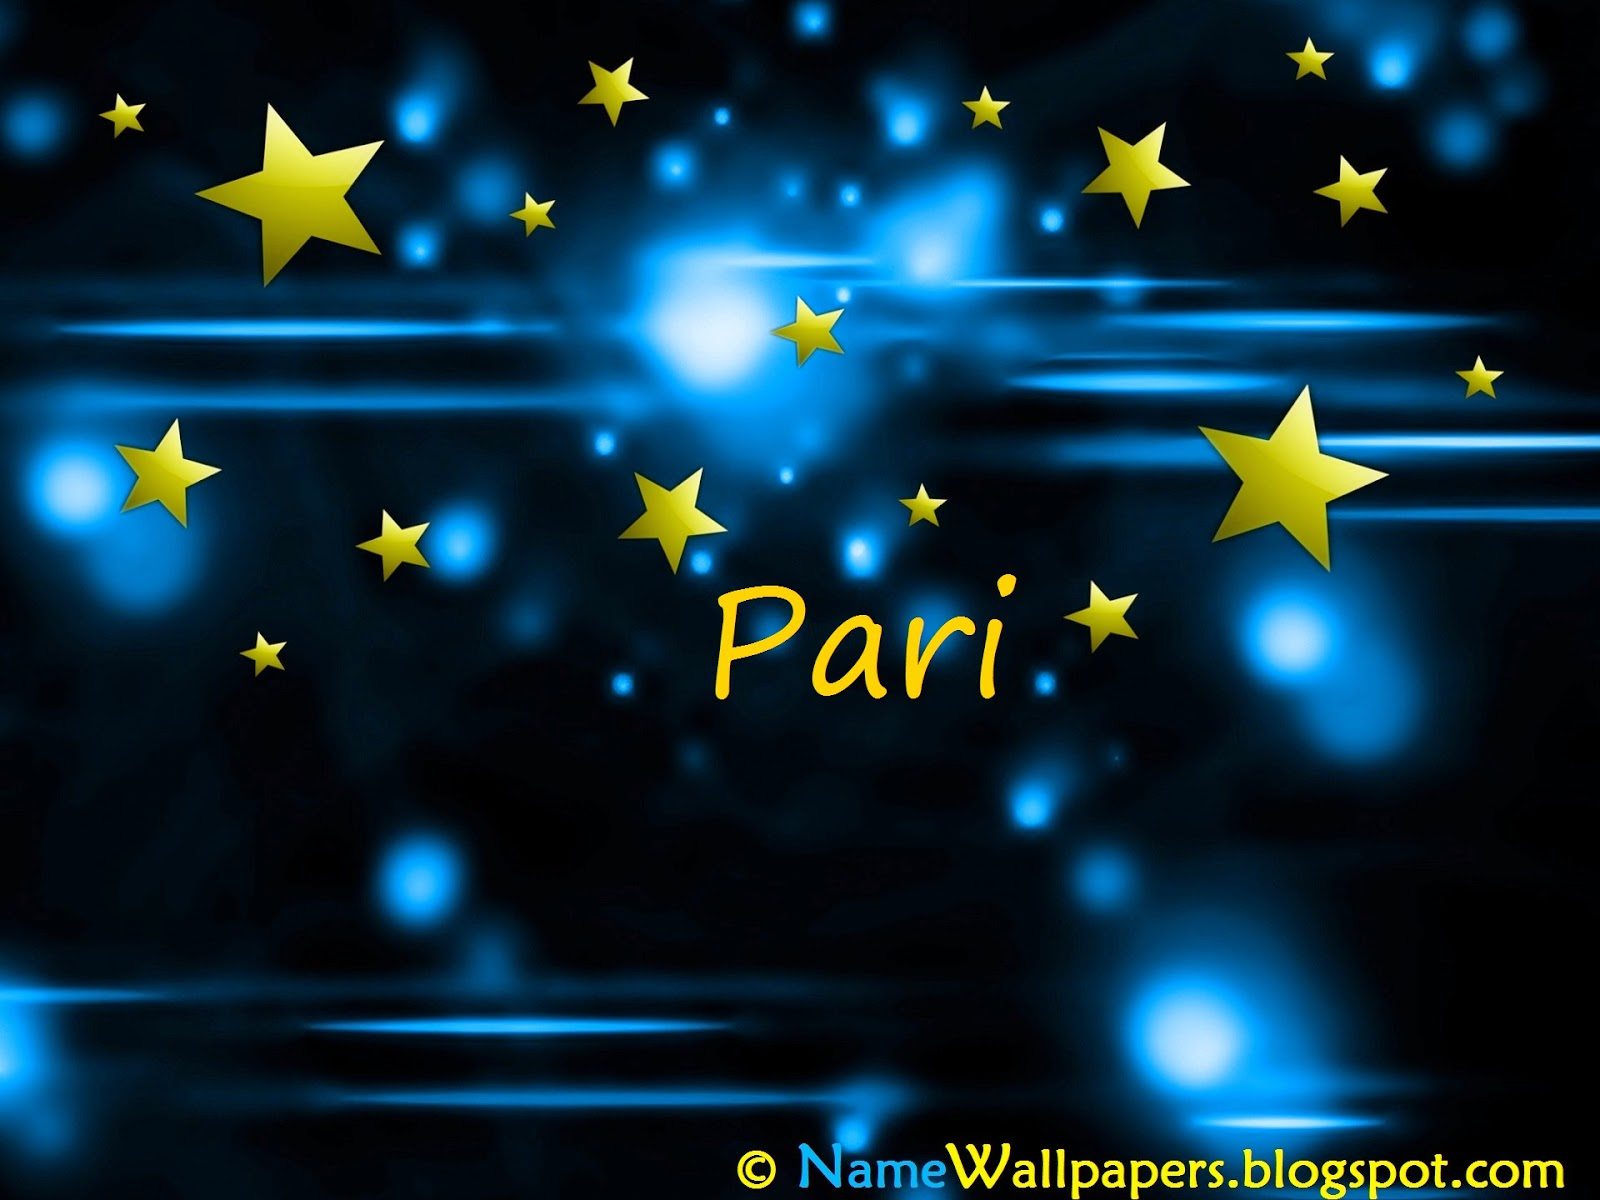 Pari Name Wallpaper